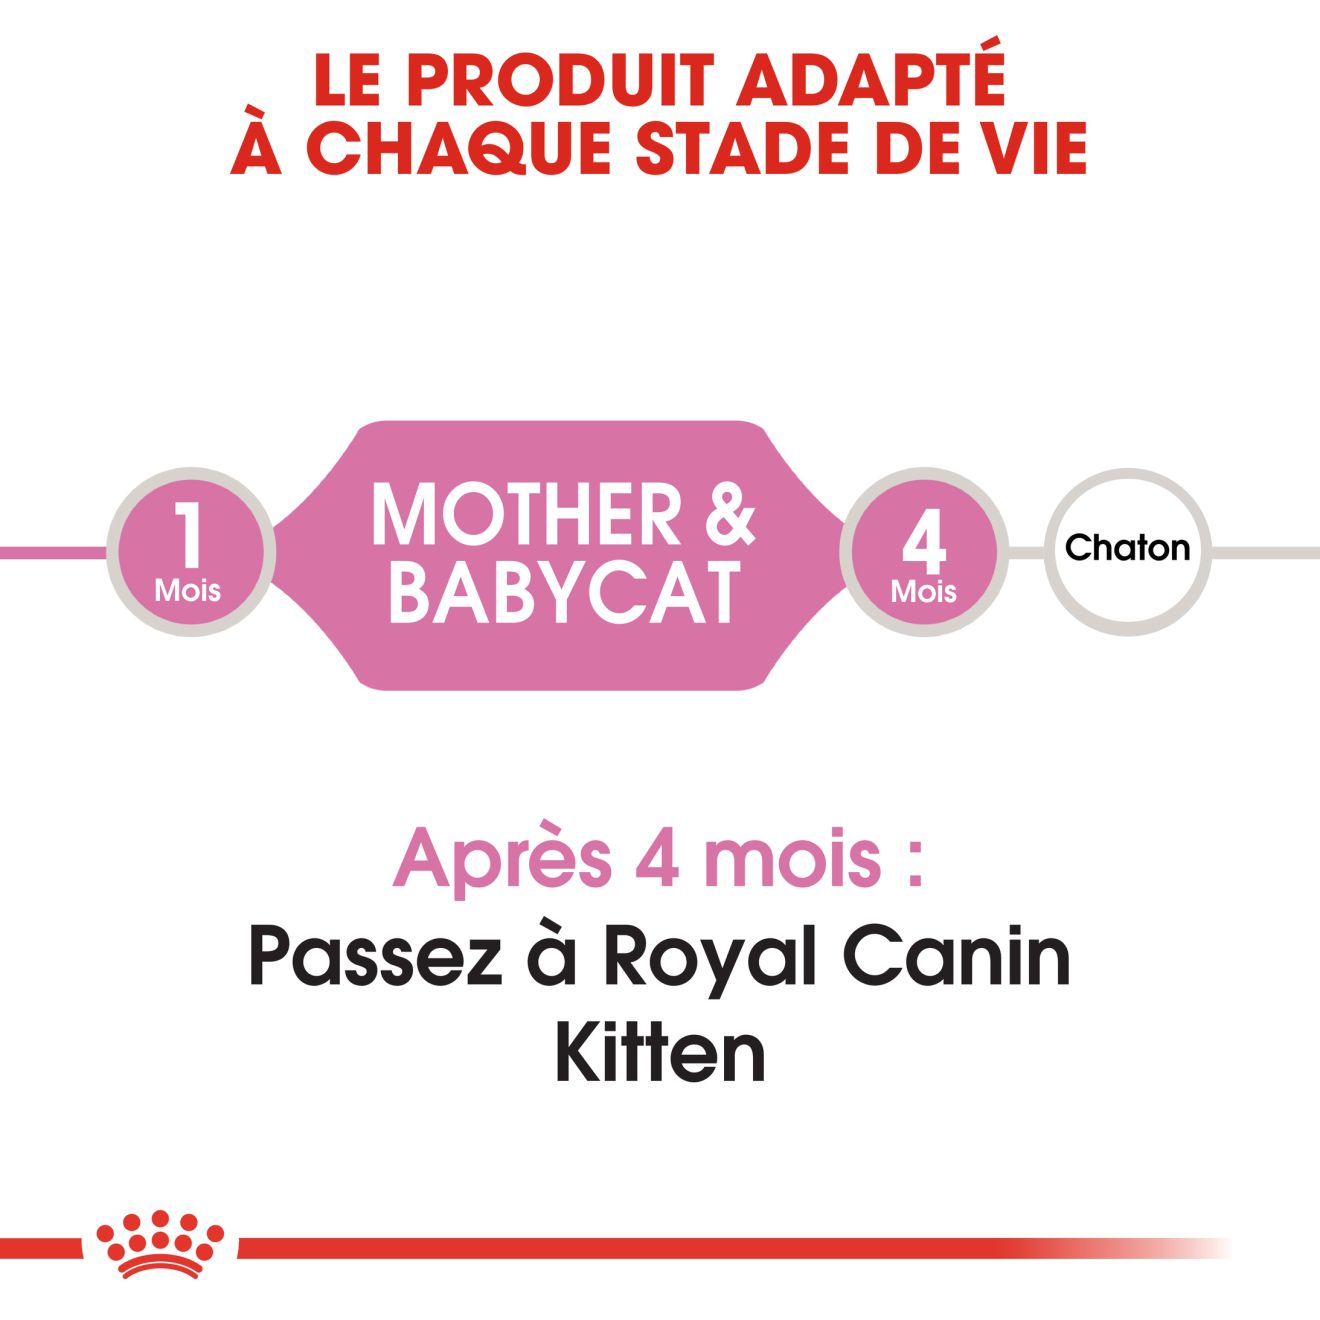 Mother & Babycat